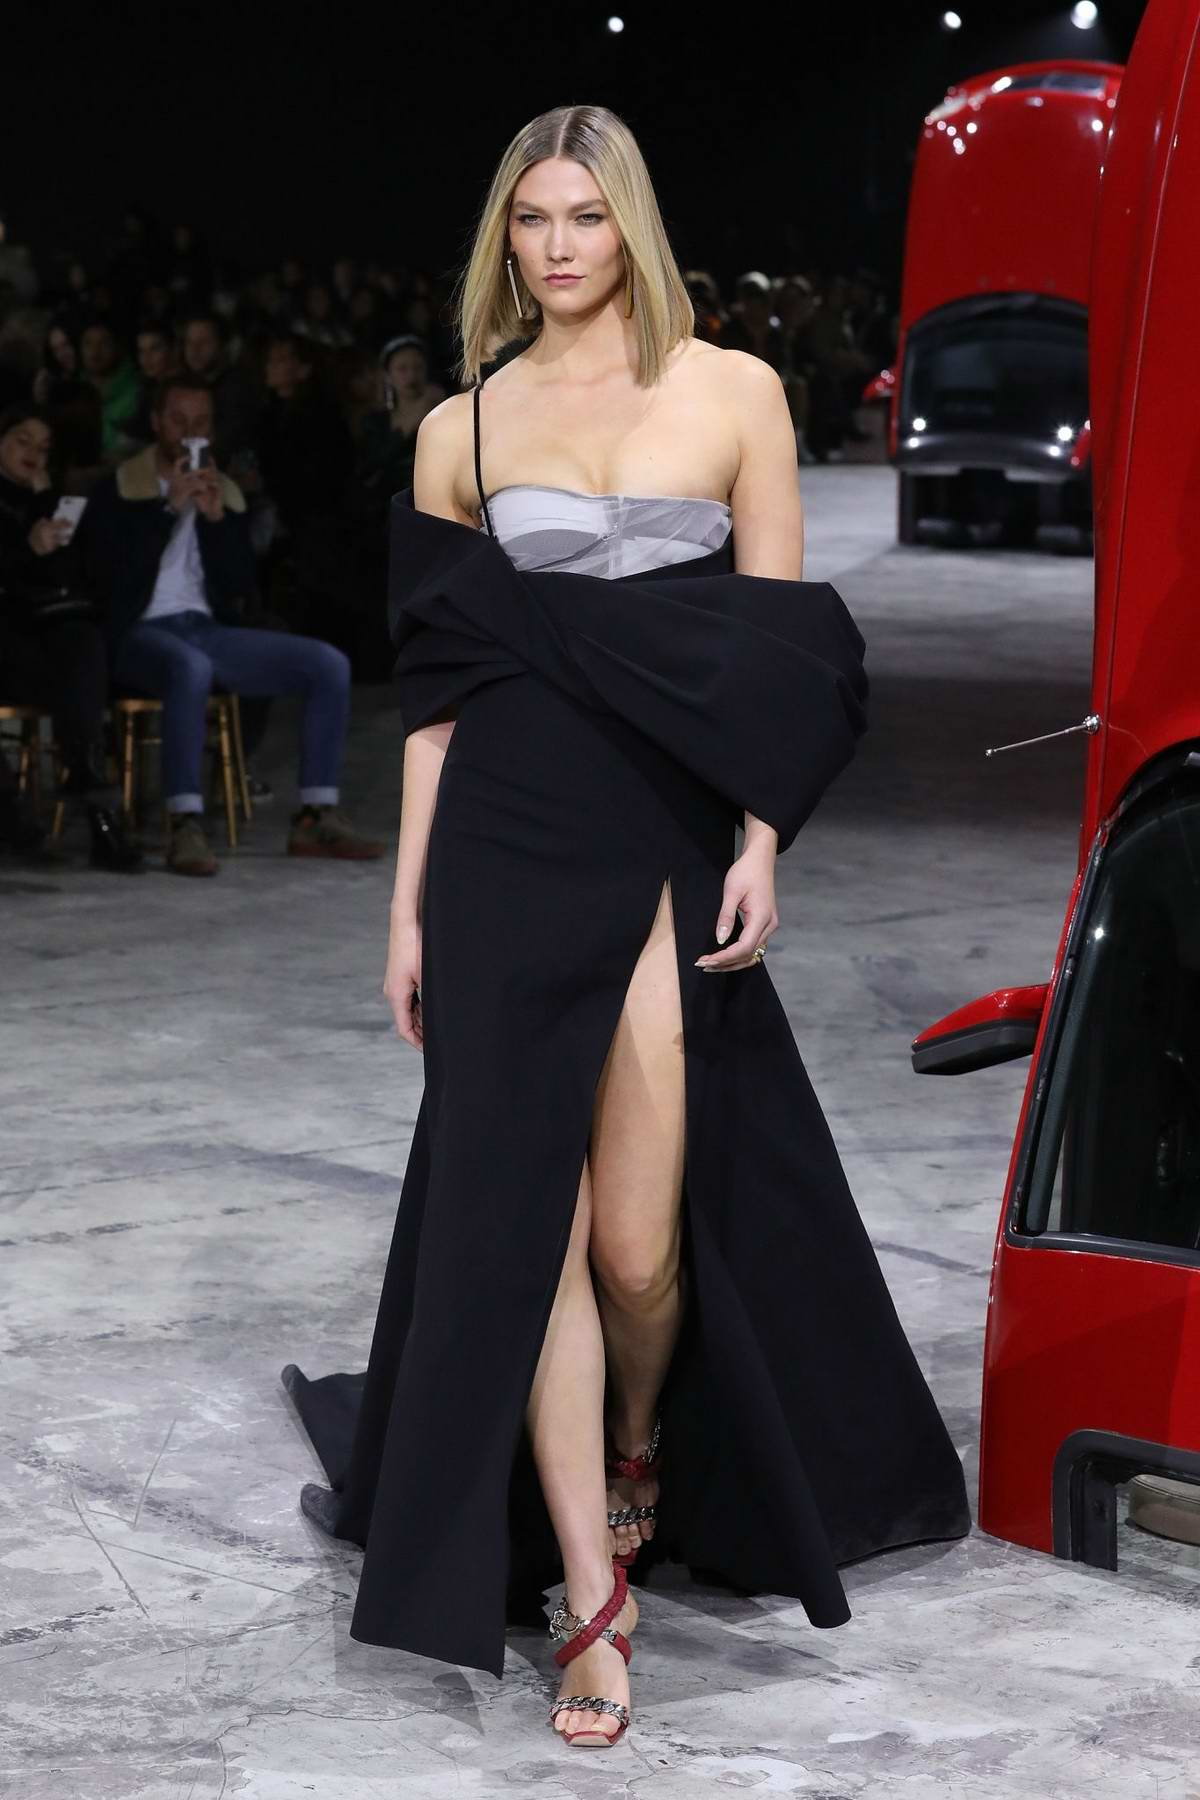 Karlie Kloss walks the runway at the Off-White show, F/W 2020 during Paris Fashion Week in Paris, France